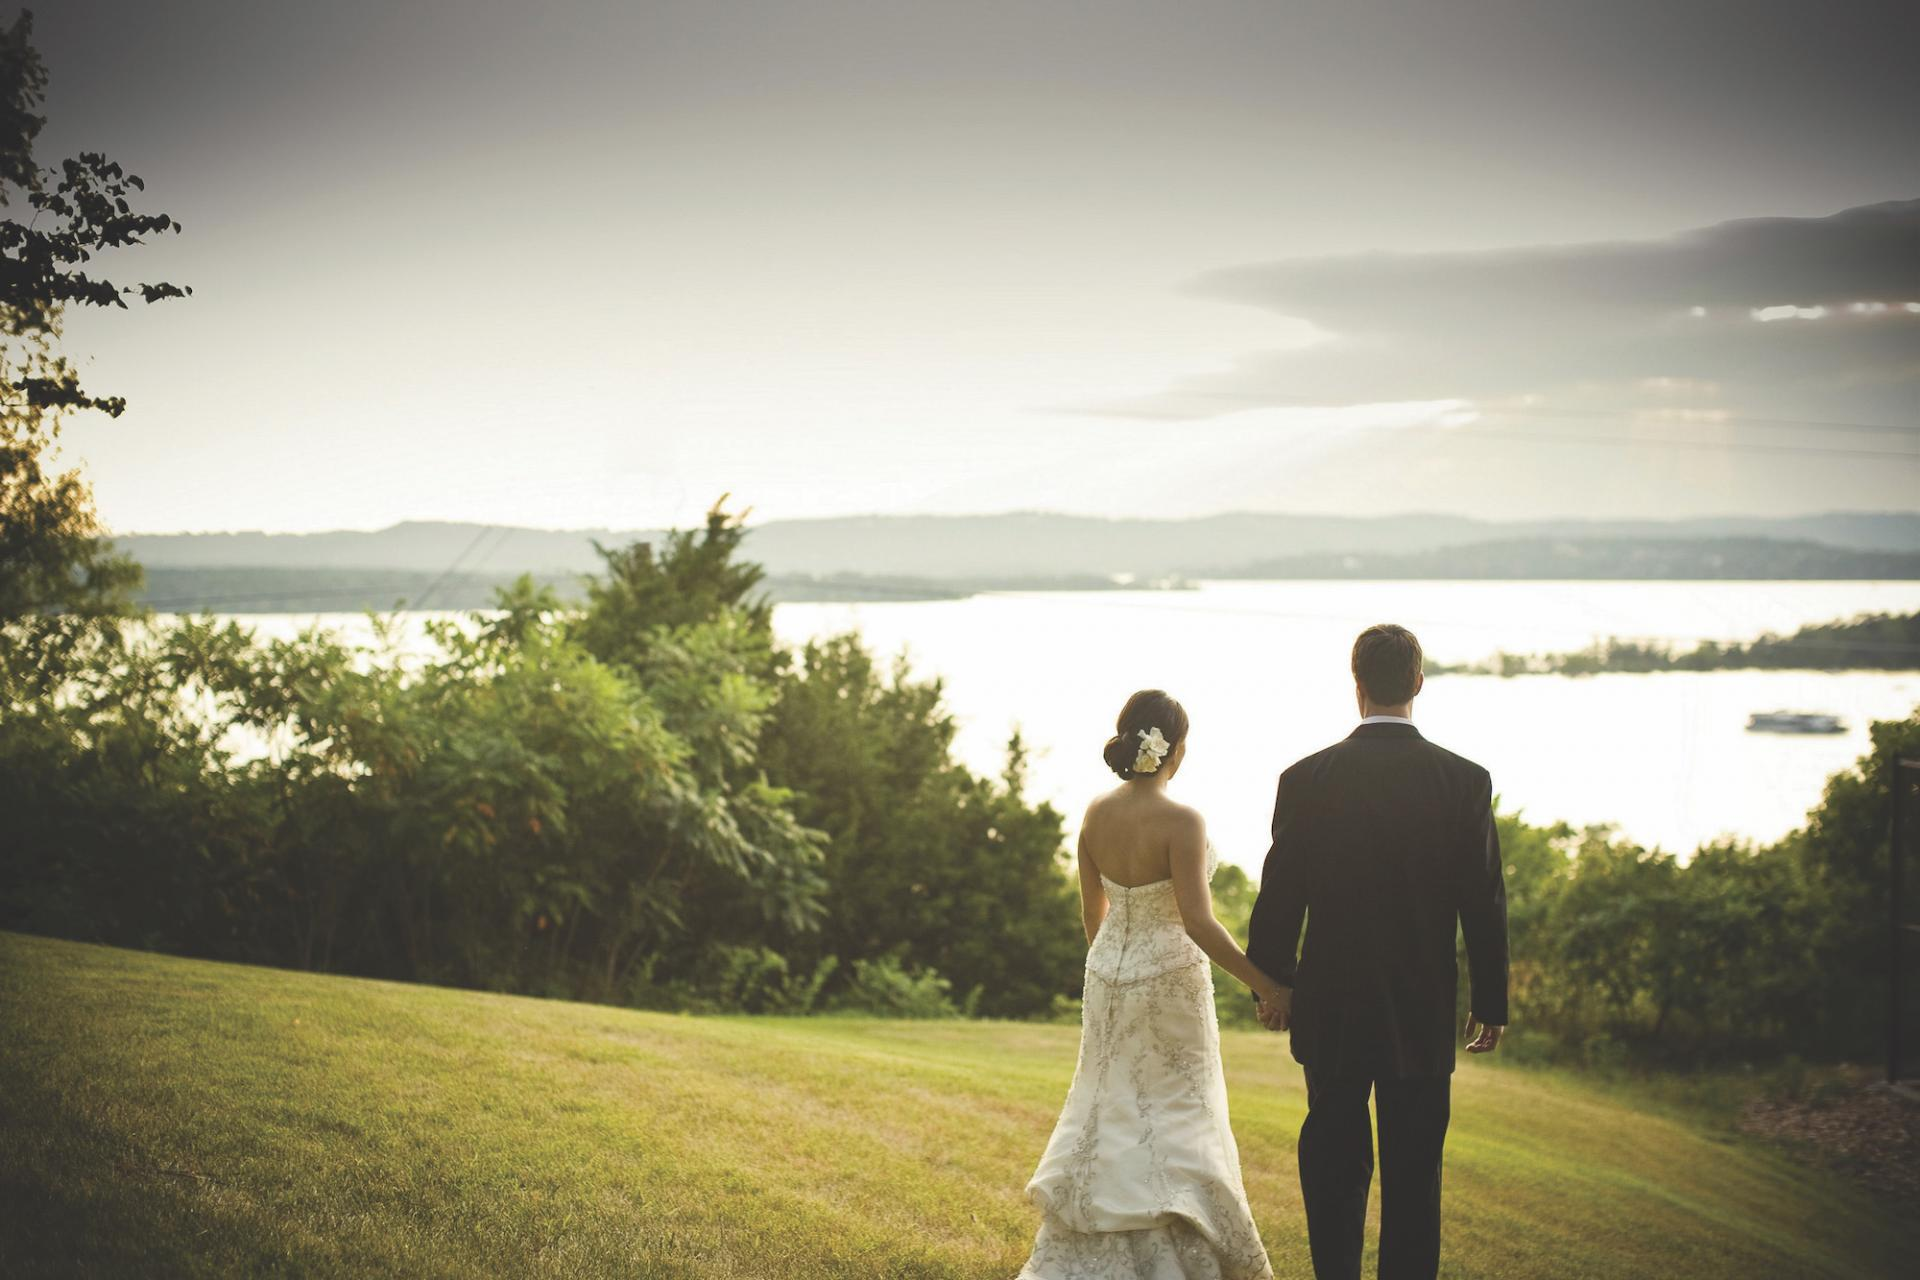 Bride and groom looking into the distant scenery of a lake and rolling hills at Chateau on the Lake Resort.